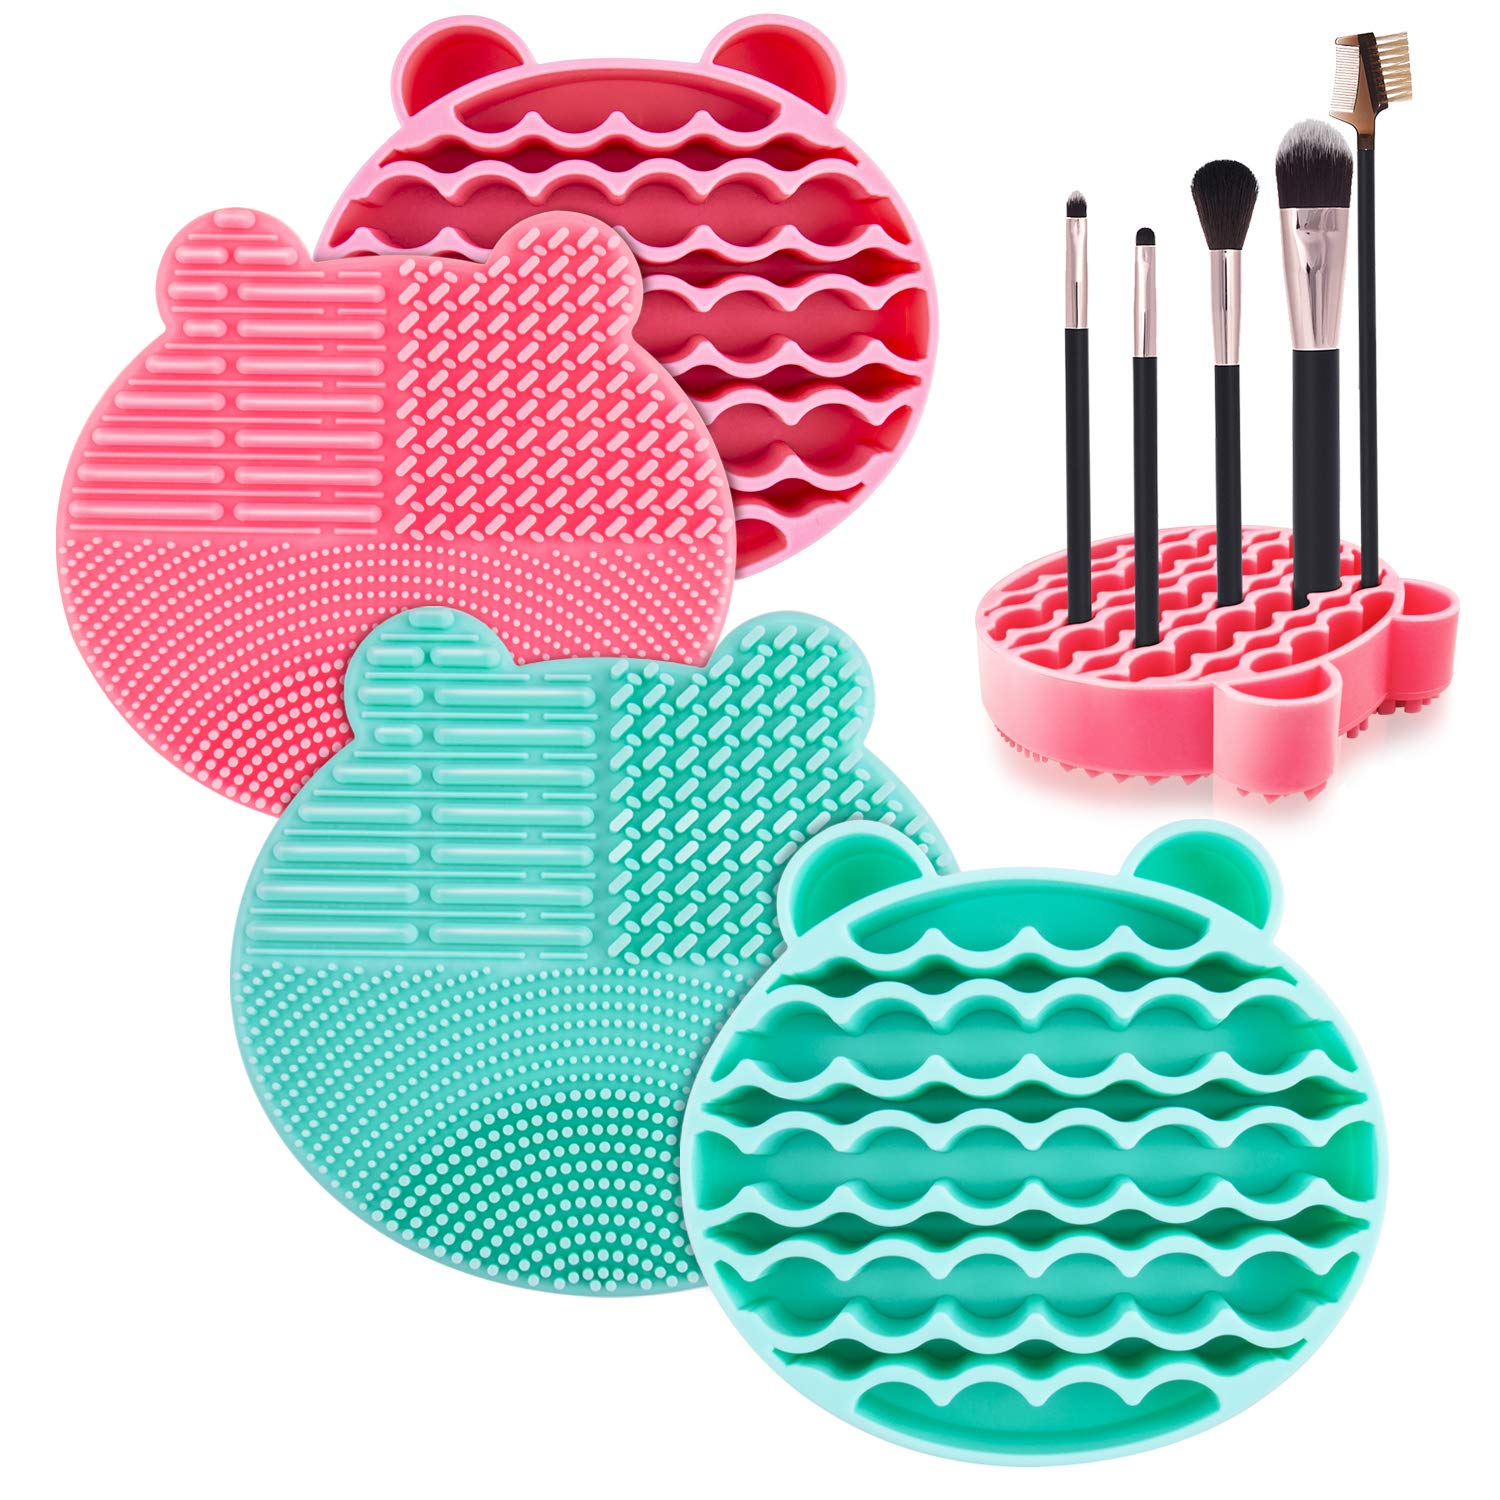 2 Pack Omew Makeup Brush Cleaner Mat, 2 in 1 Silicone Brush Cleaner Dryer Tray Brushes Drying Rack Holder Travel Portable Cosmetic Brush Scrubber Pad Cleaning Washing Tool